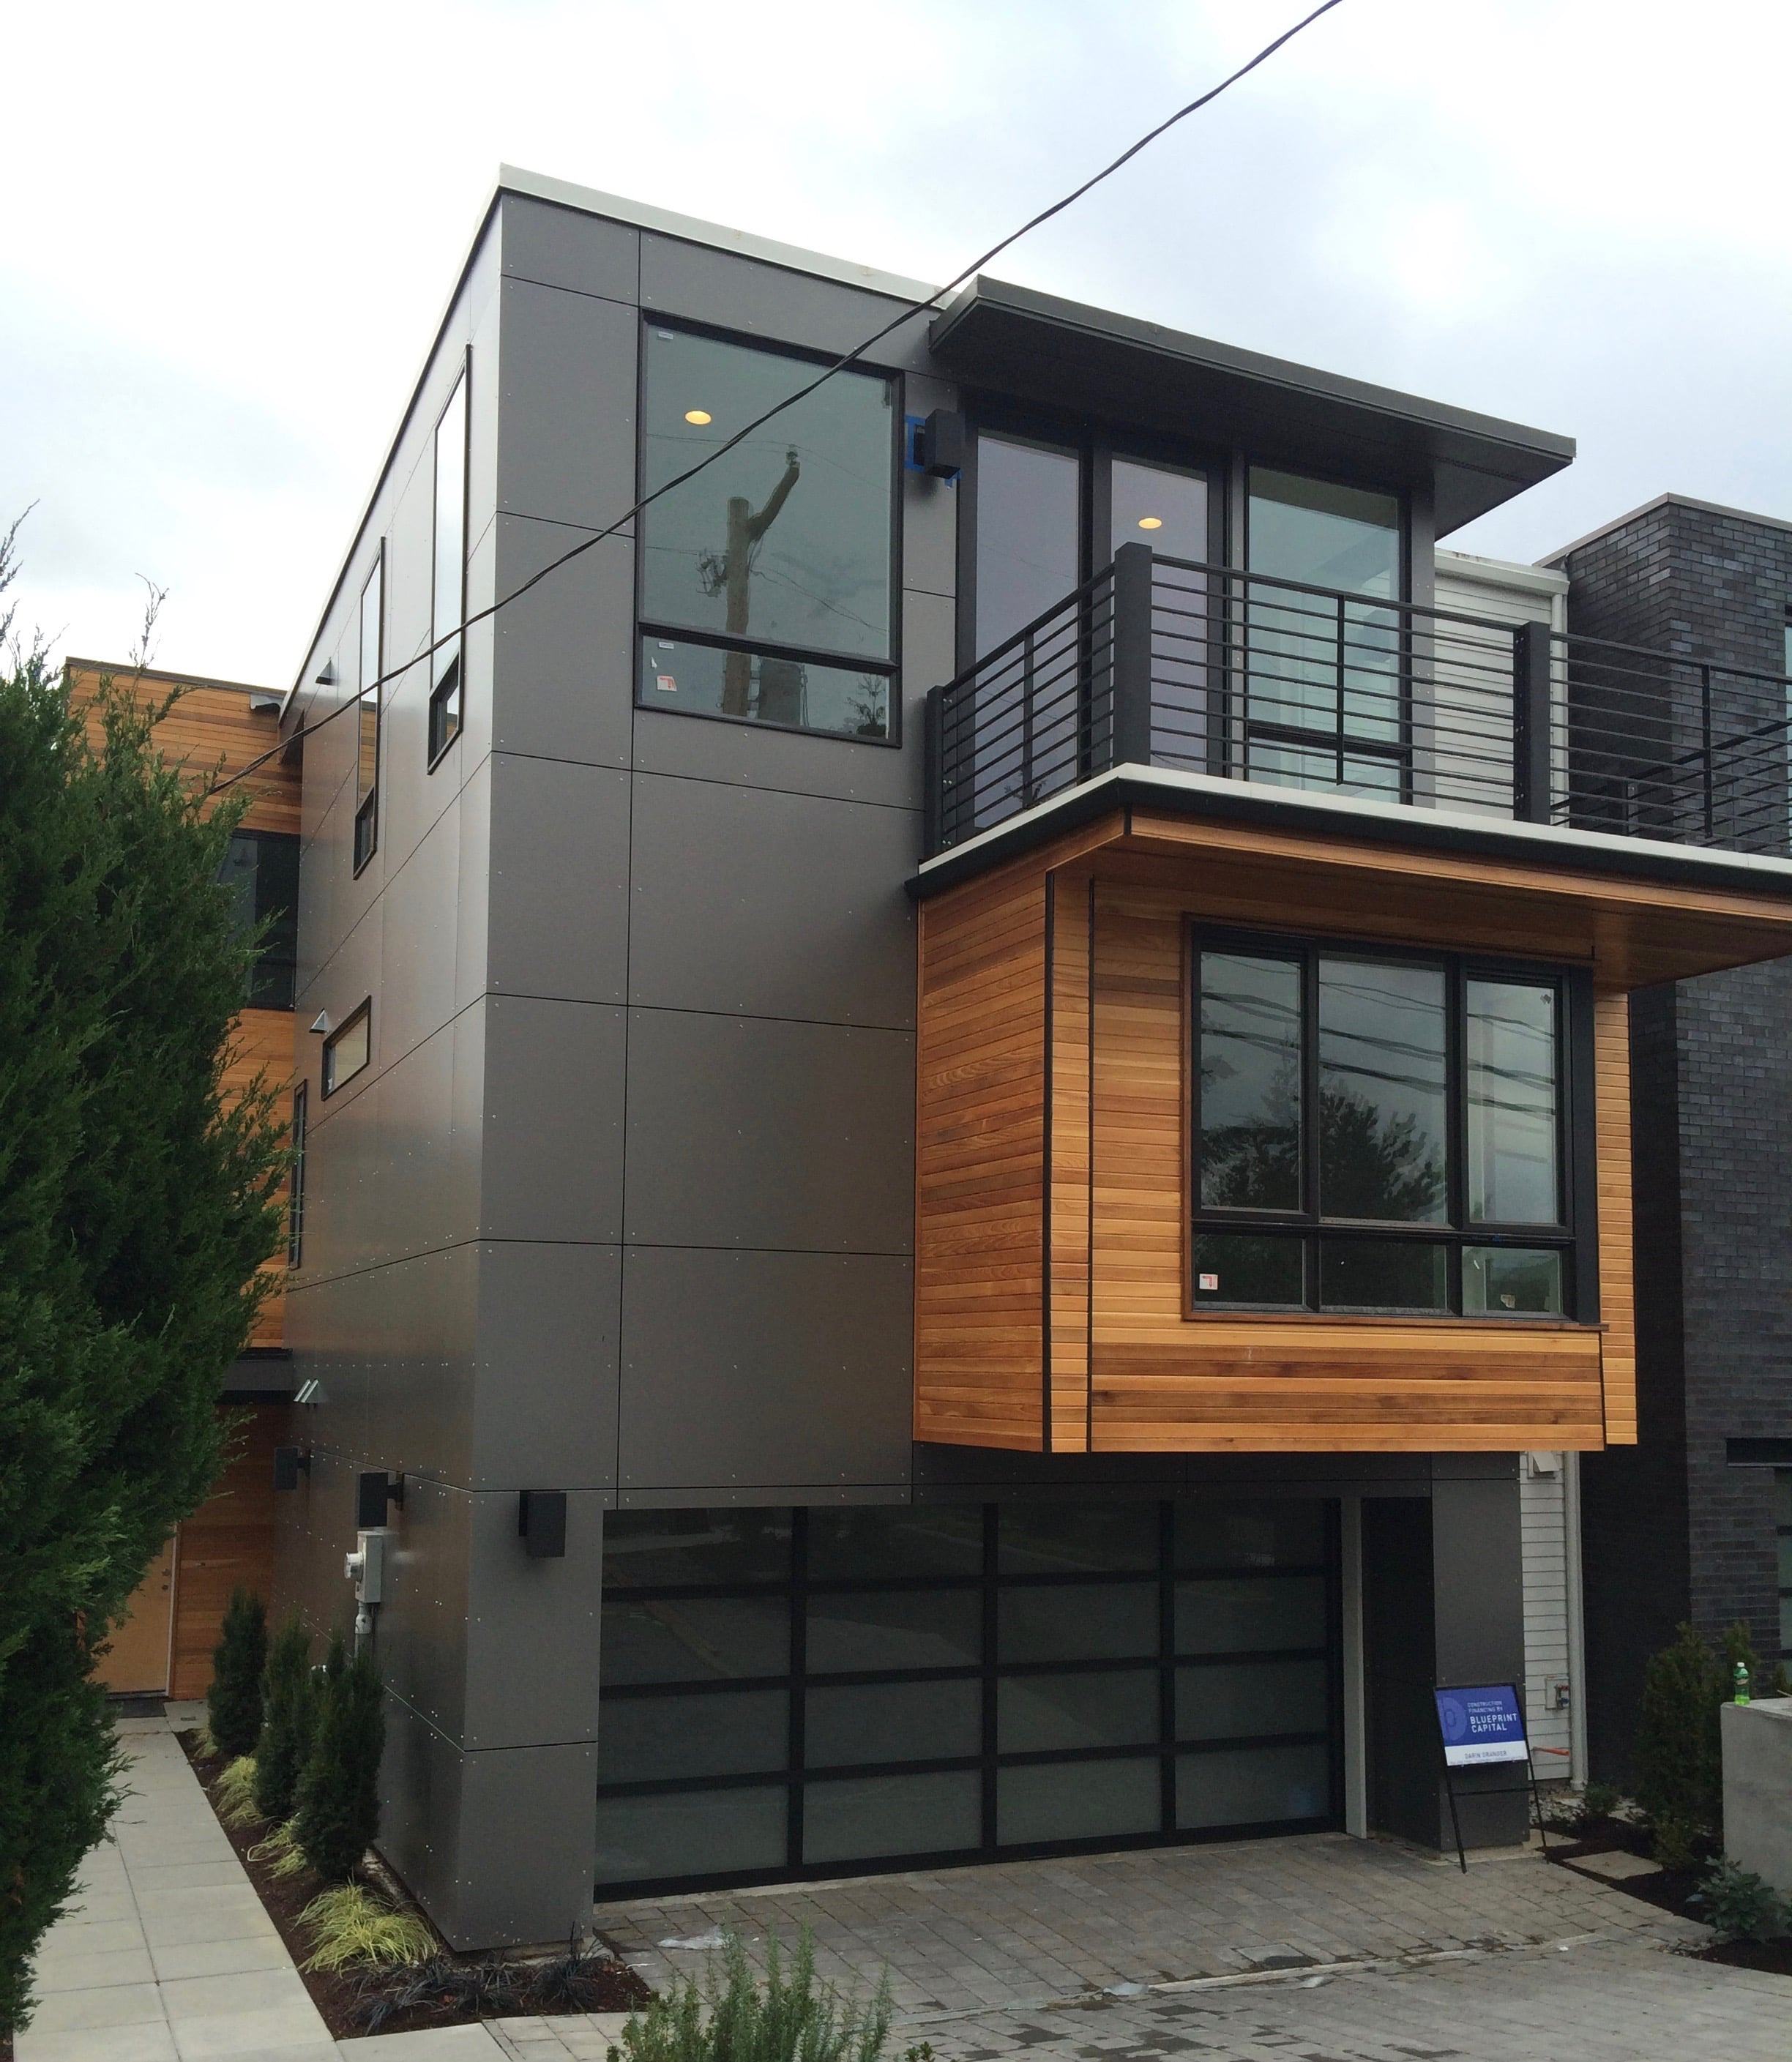 64th street townhomes medici architects previous project malvernweather Choice Image